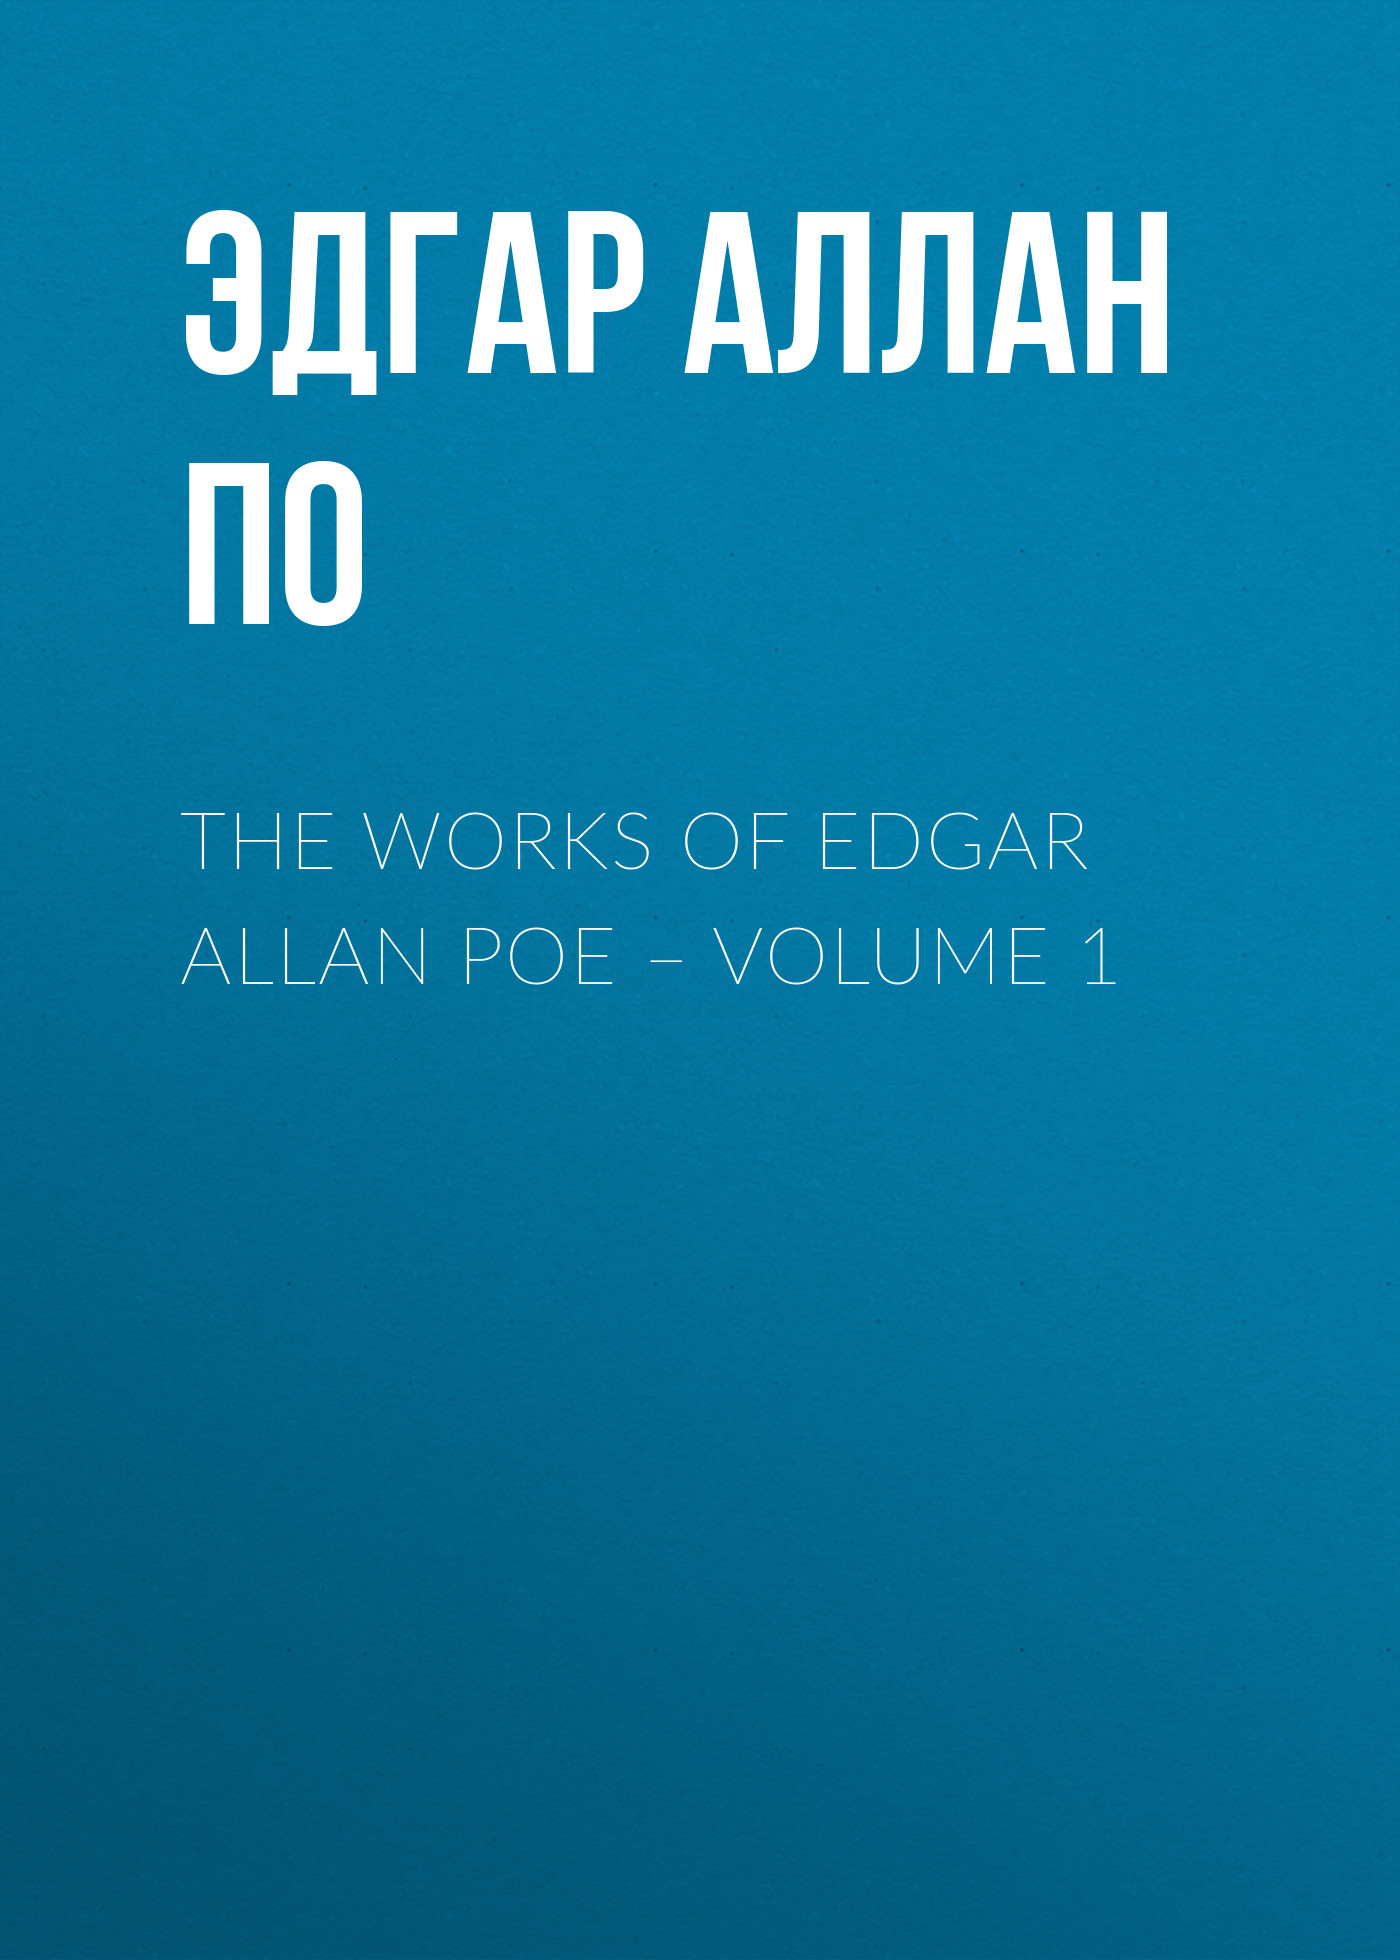 Эдгар Аллан По The Works of Edgar Allan Poe – Volume 1 edgar allan poe the best of edgar allan poe volume 4